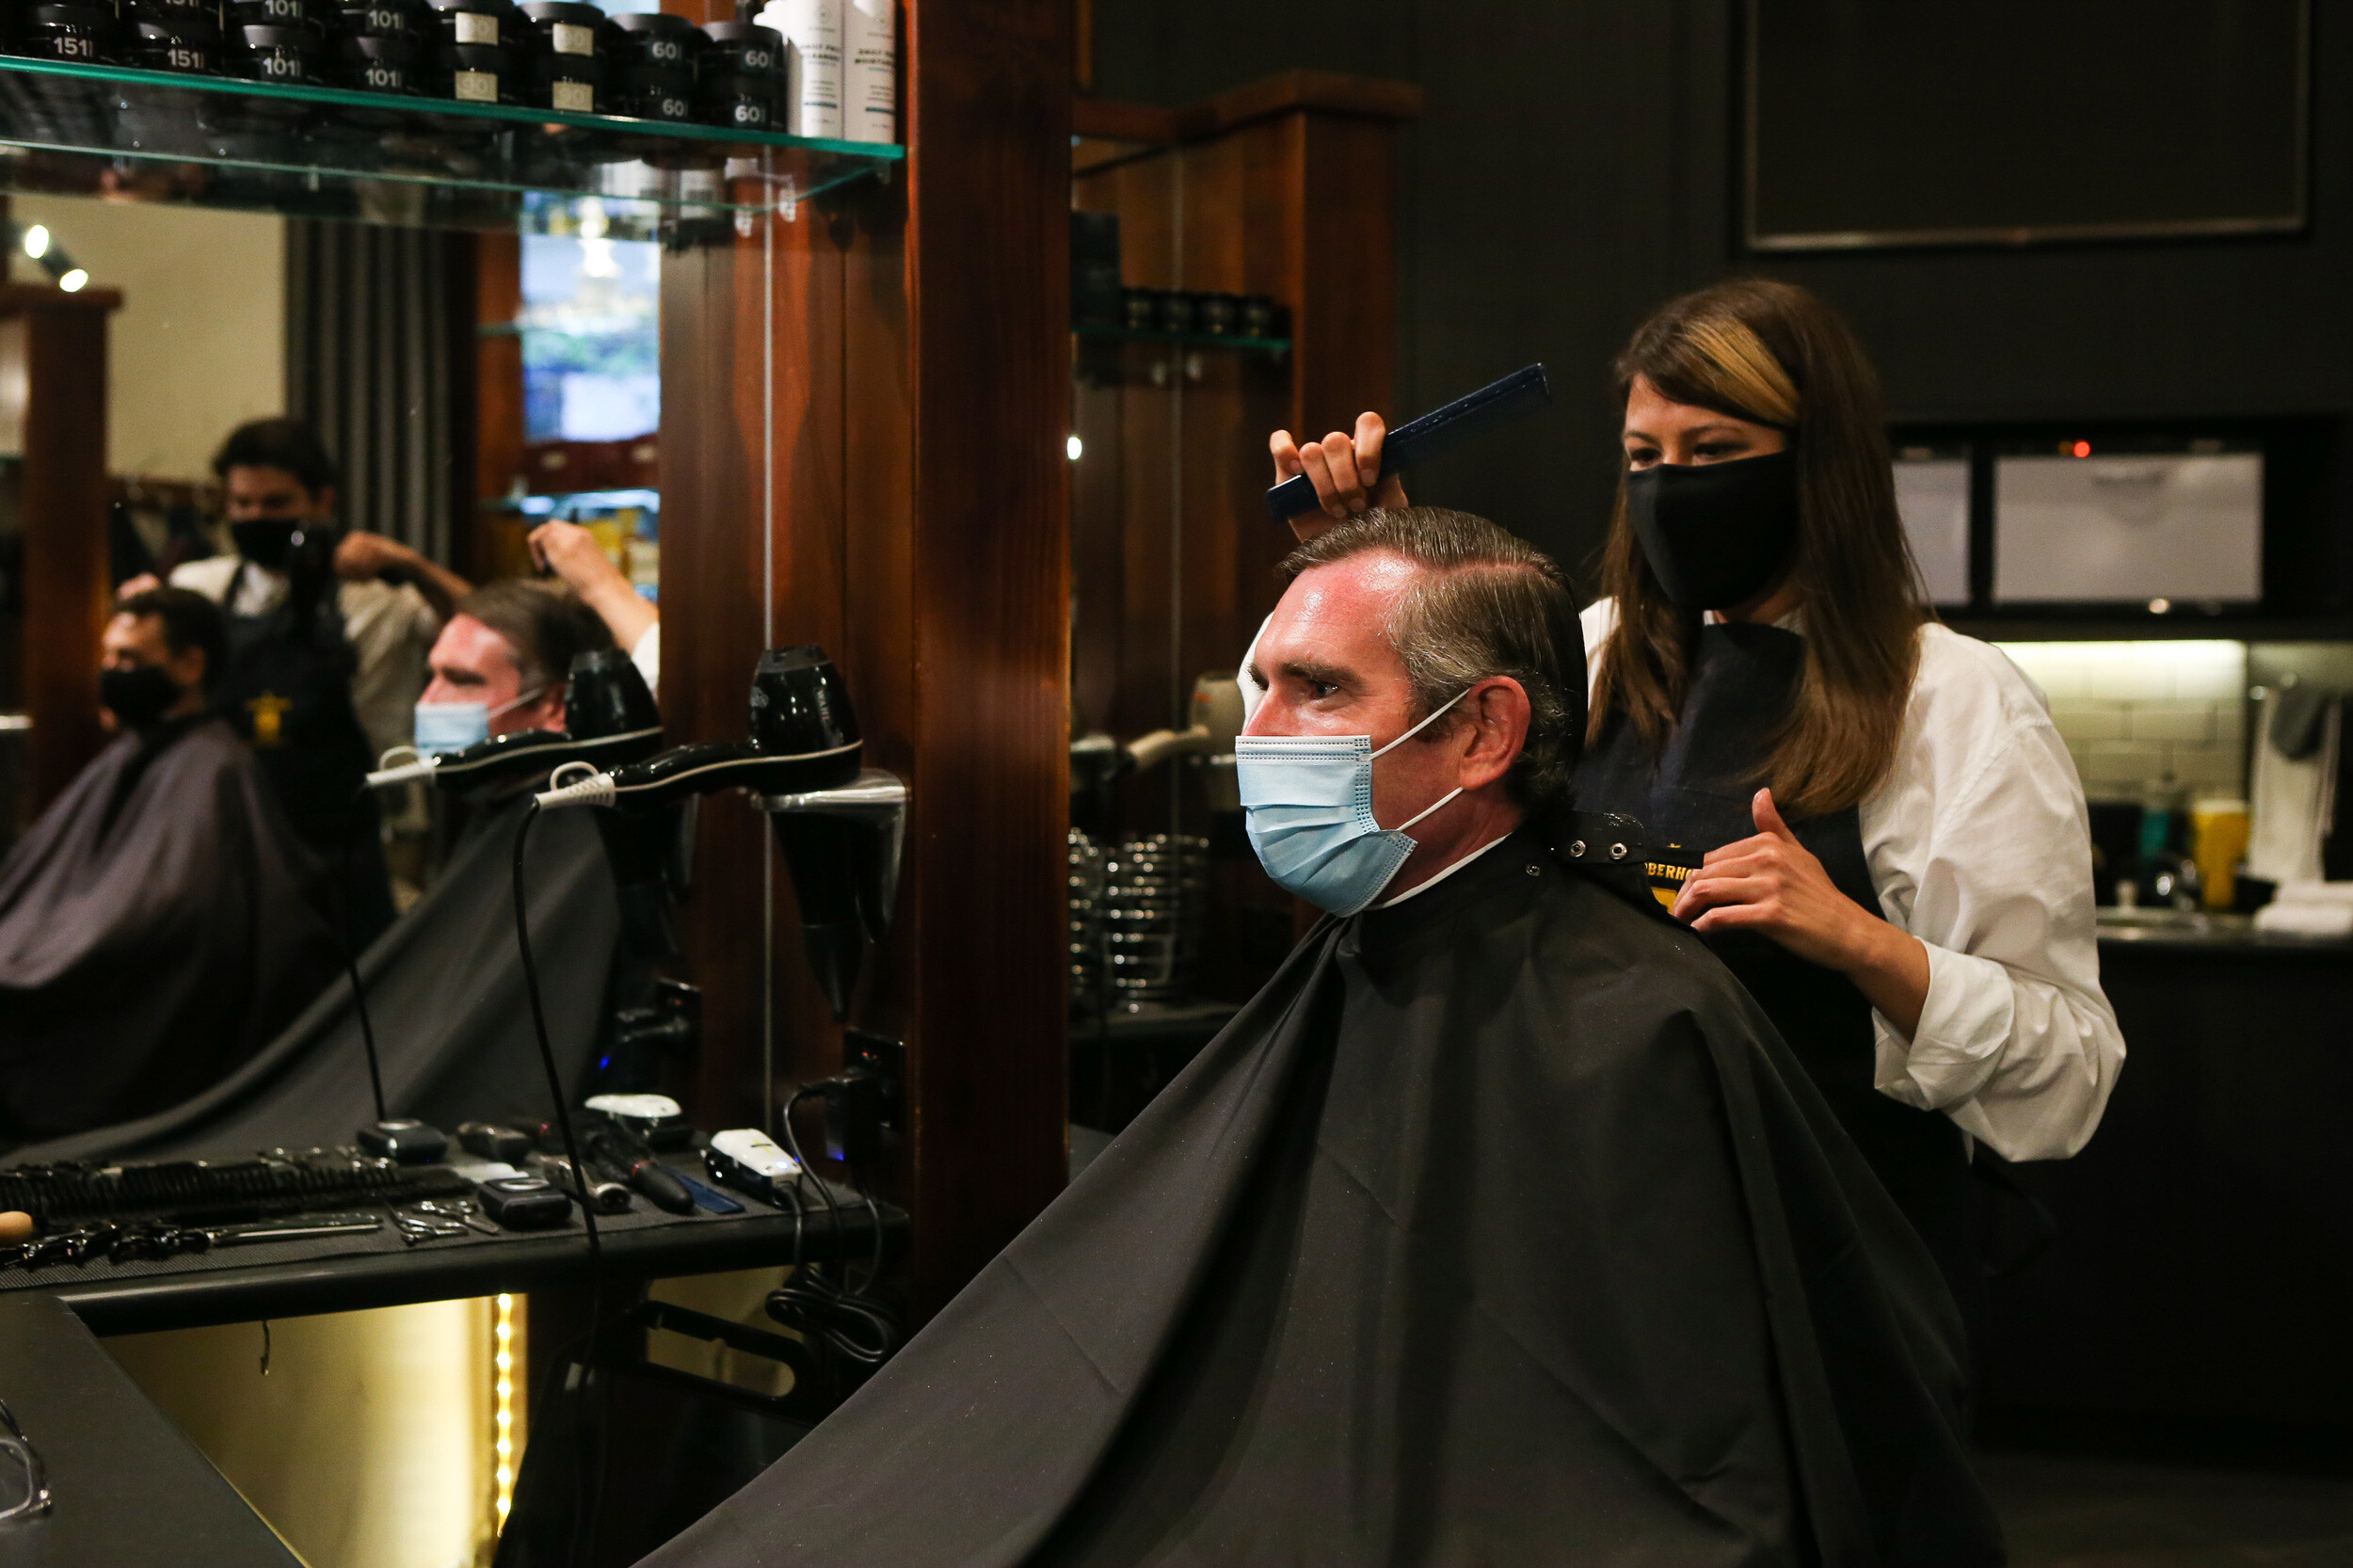 <i>Gaye Gerard/Pool/Getty Images</i><br/>NSW Premier Dominic Perrottet receives a haircut on October 11